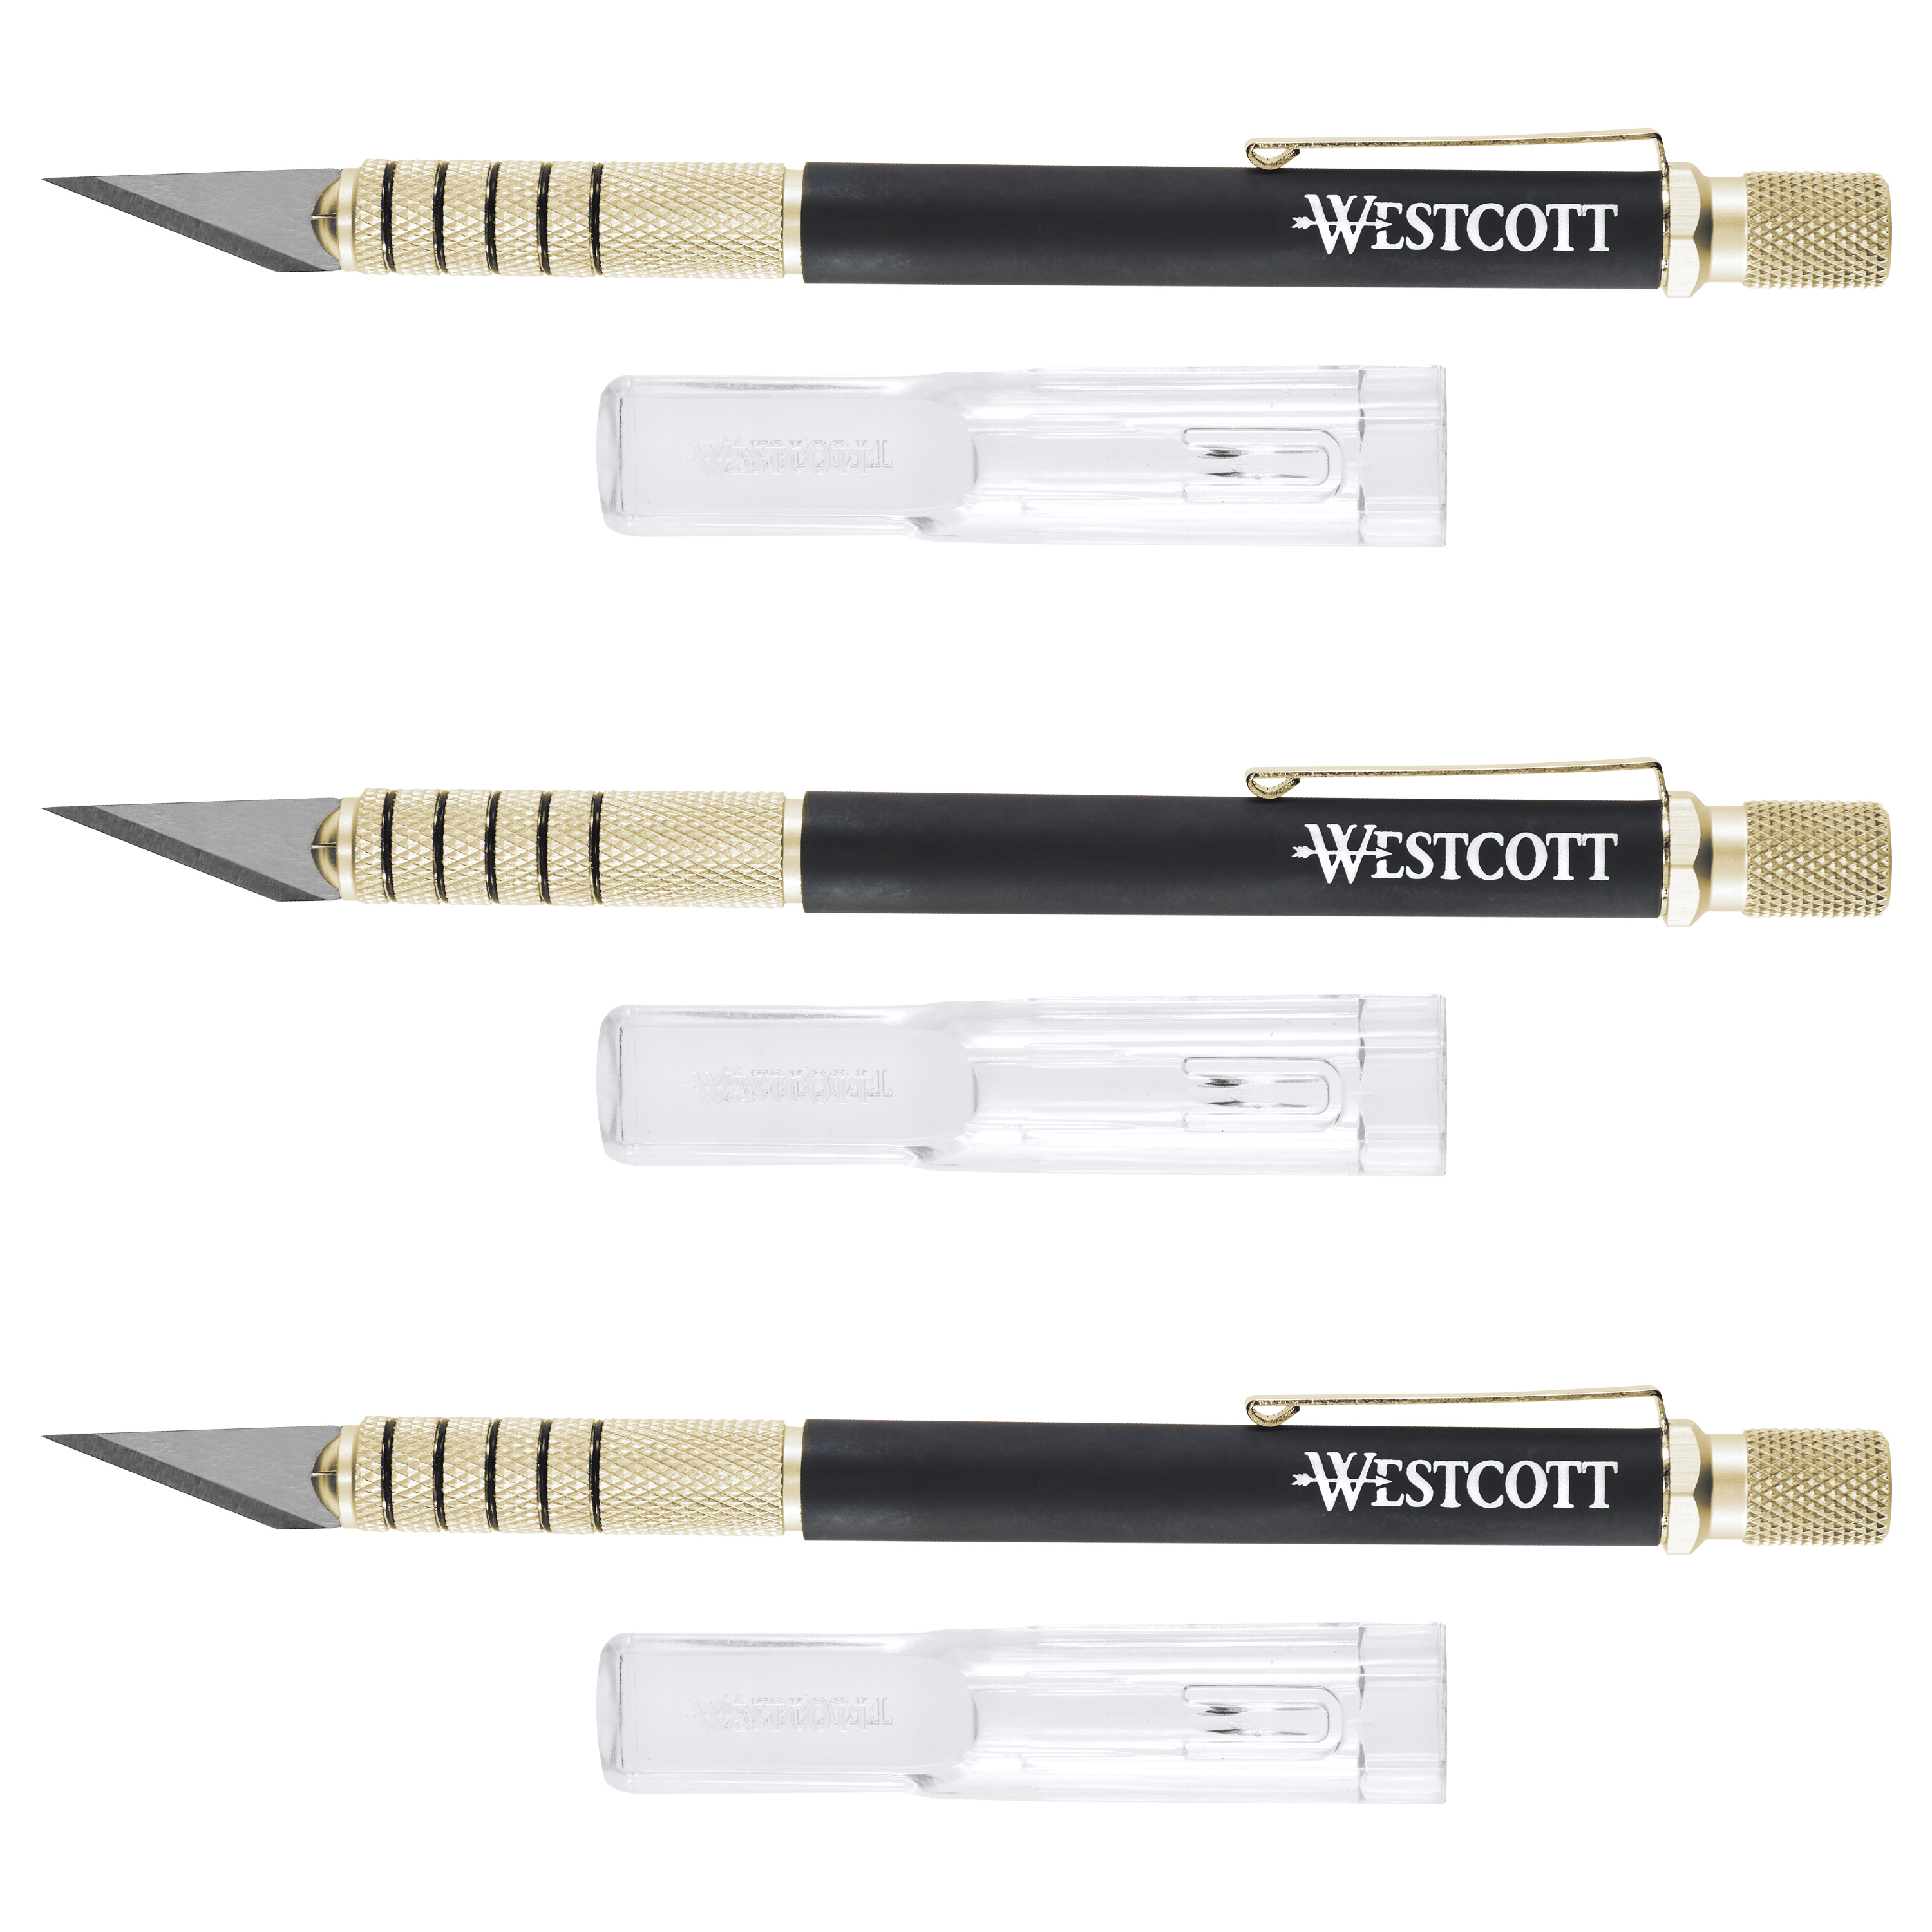 Westcott Carbotitanium Hobby Knife with Comfort Grip Handle, 3 pack gold by ACME UNITED CORPORATION